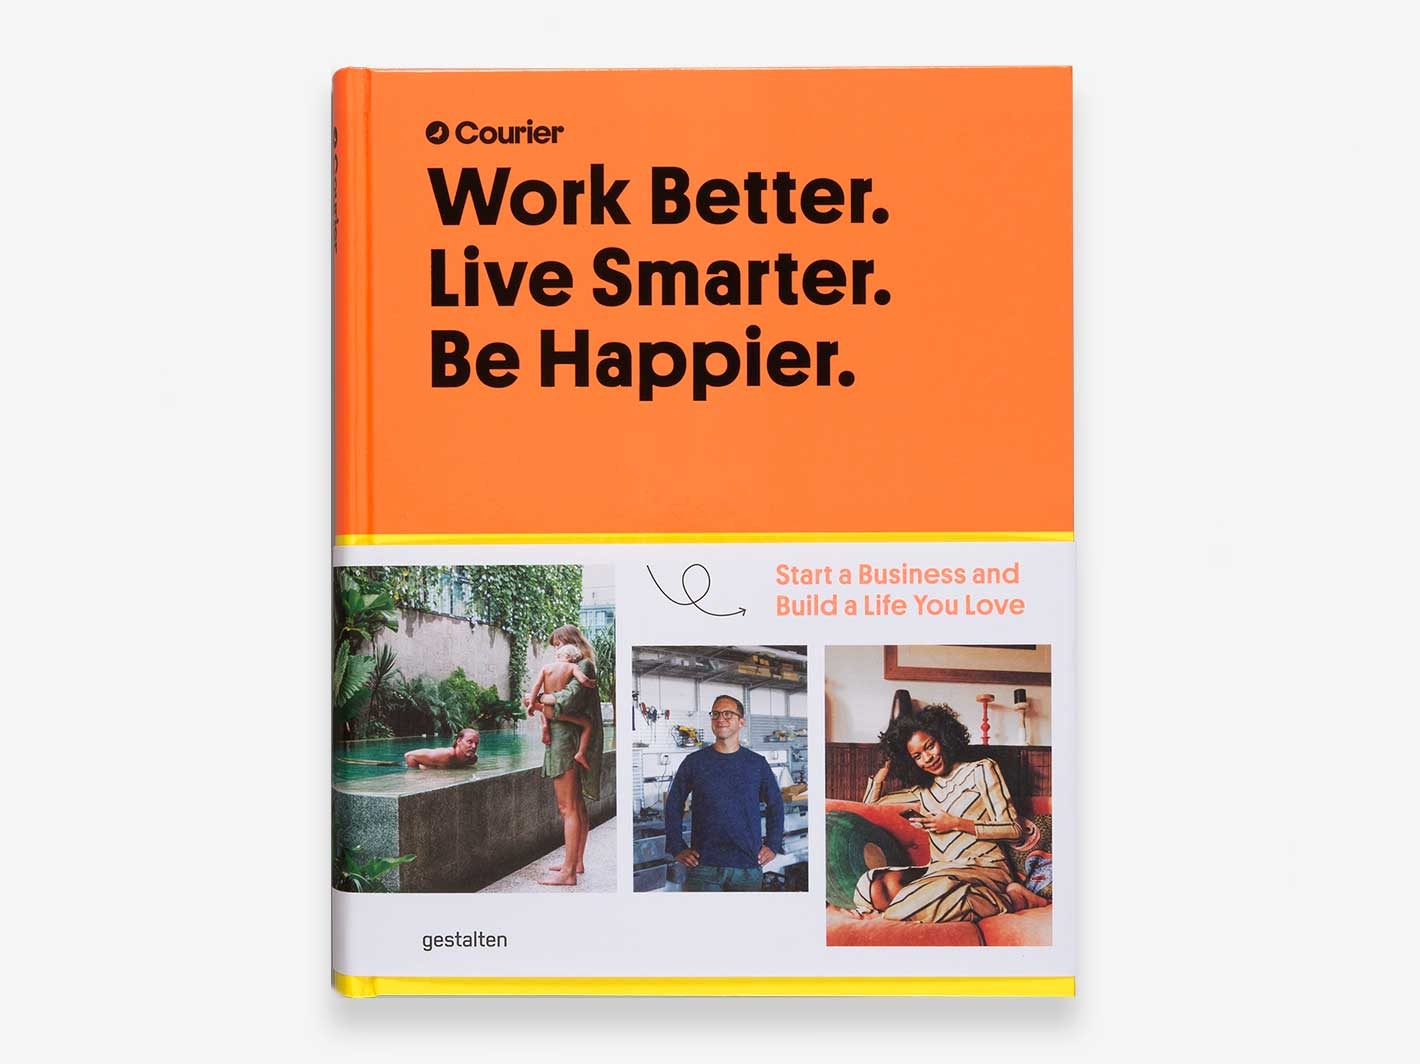 Work Better, Live Smarter, Be Happier